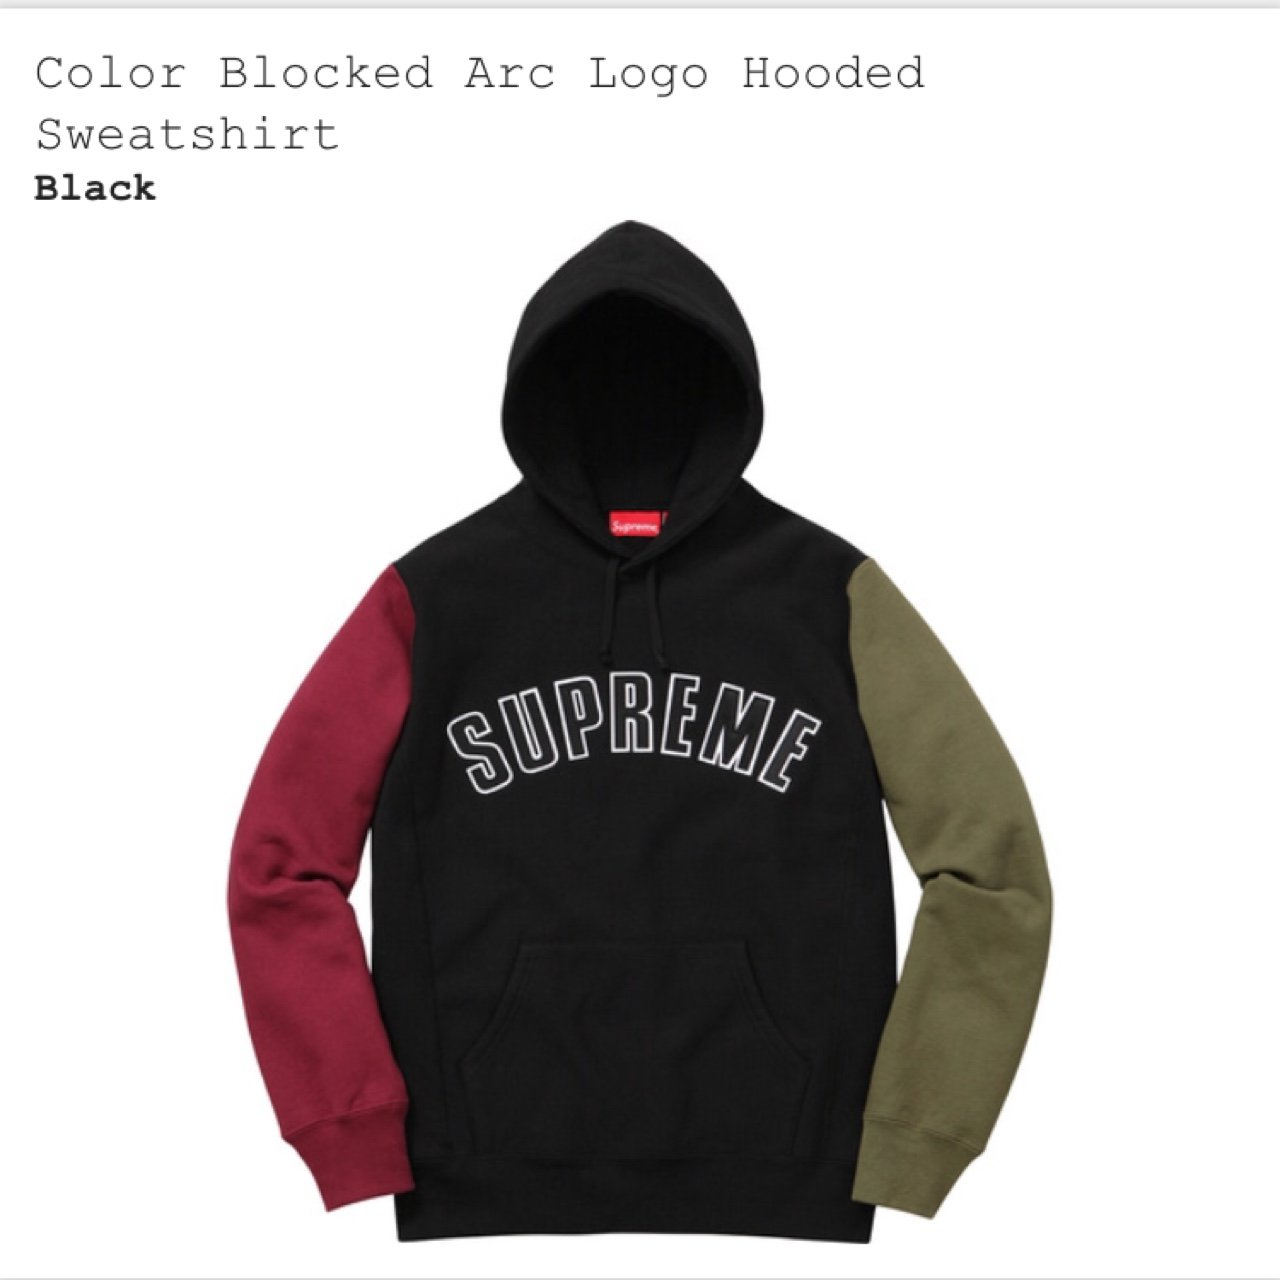 e796d2810d4d Supreme Color Blocked Arc Logo Hooded Sweatshirt